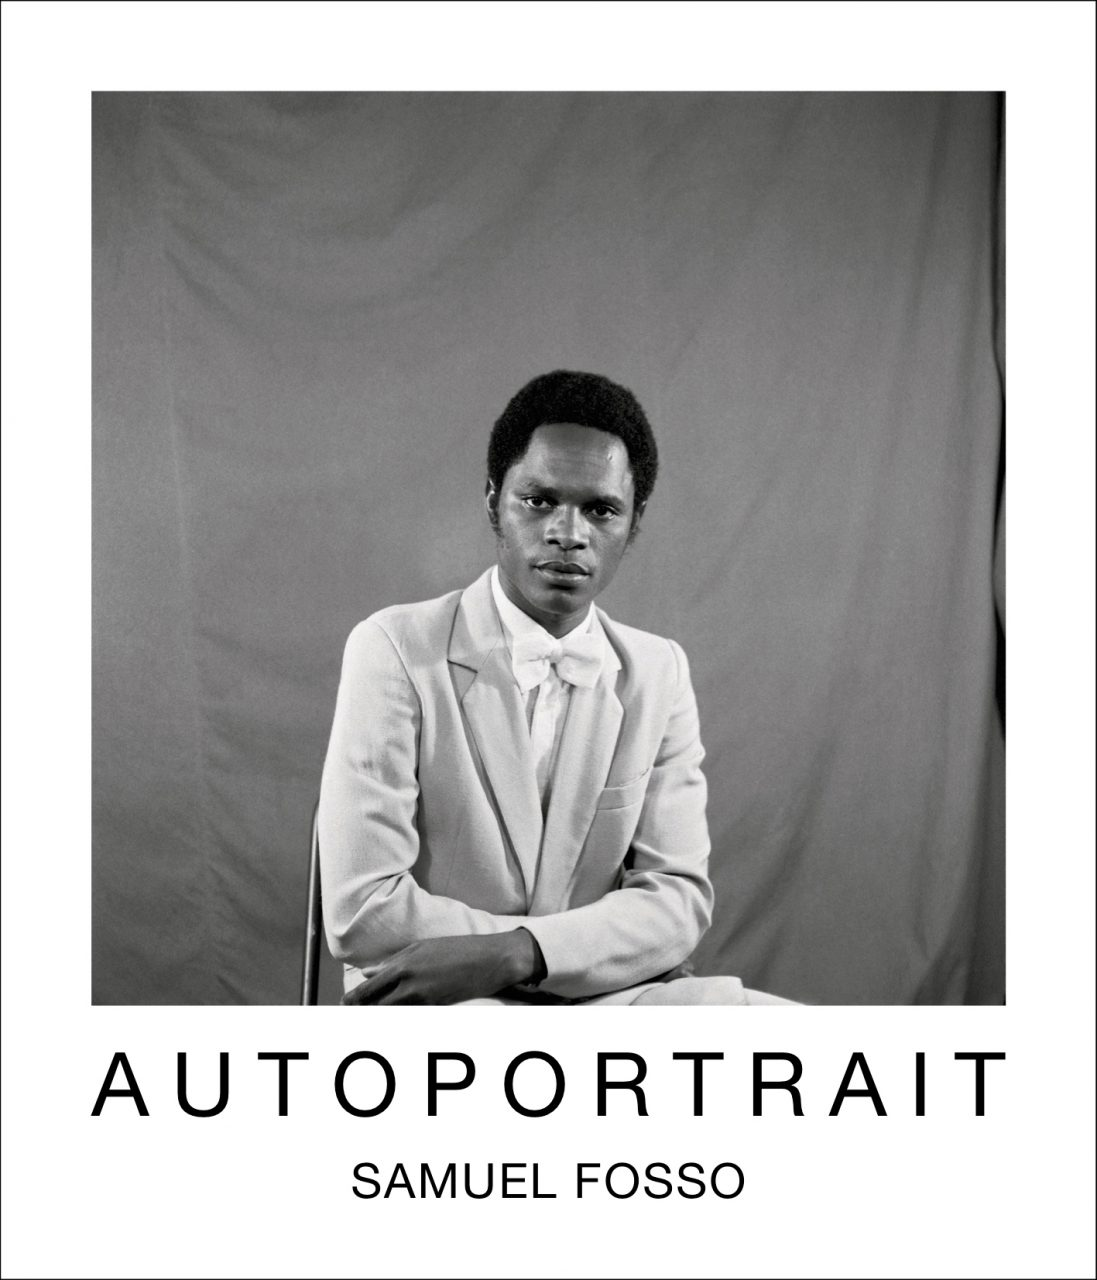 Walther Collection Steidl Artist Monograph Samuel Fosso AUTOPORTRAIT Cover 2019